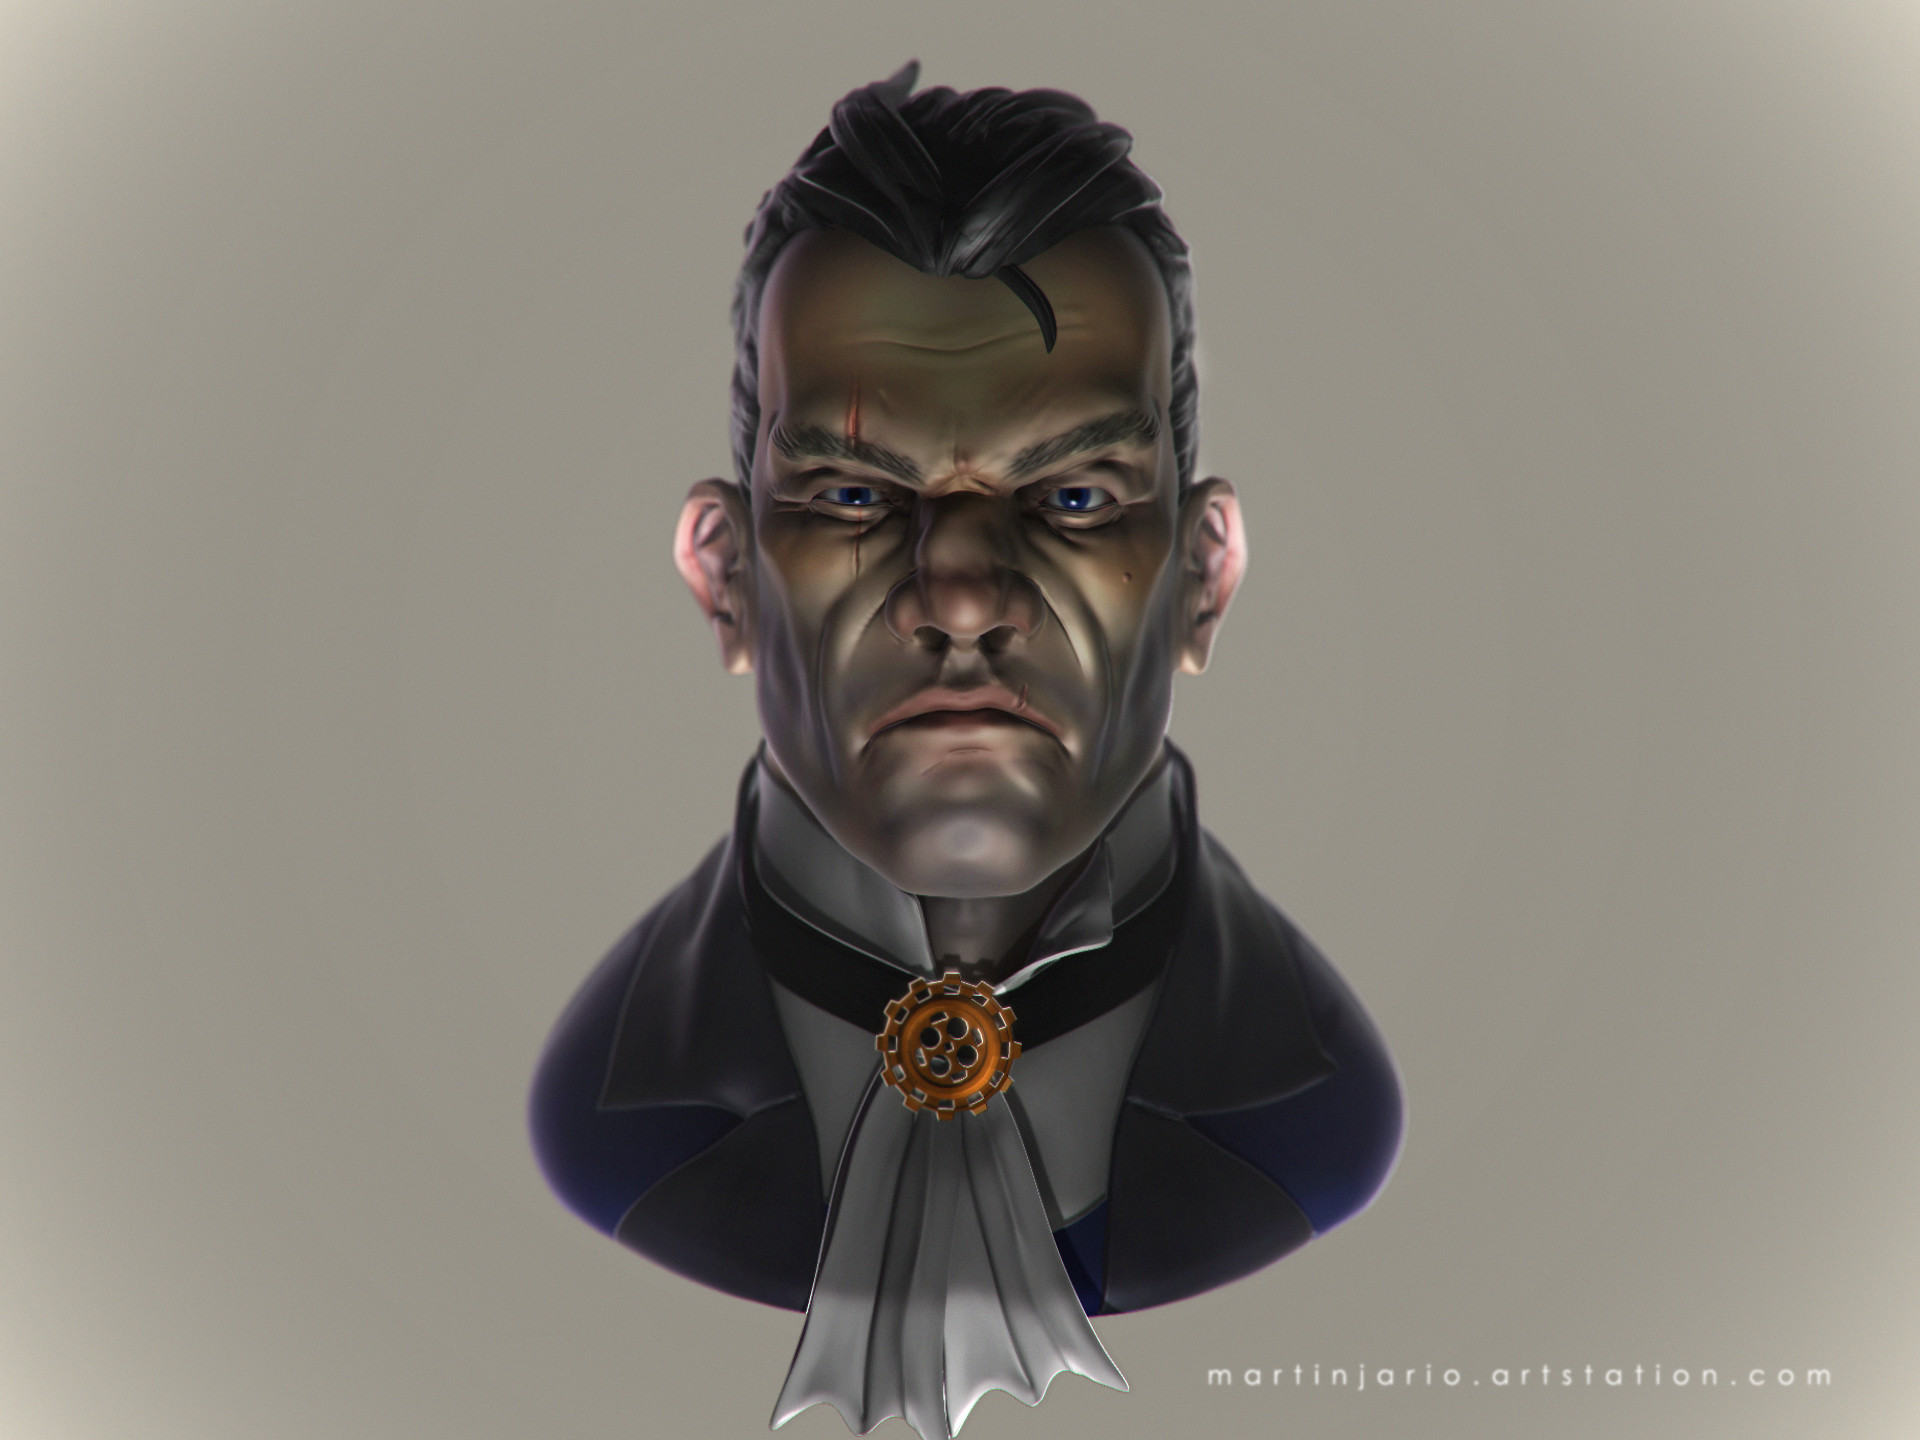 Martin jario martinjario dishonored fanart final render